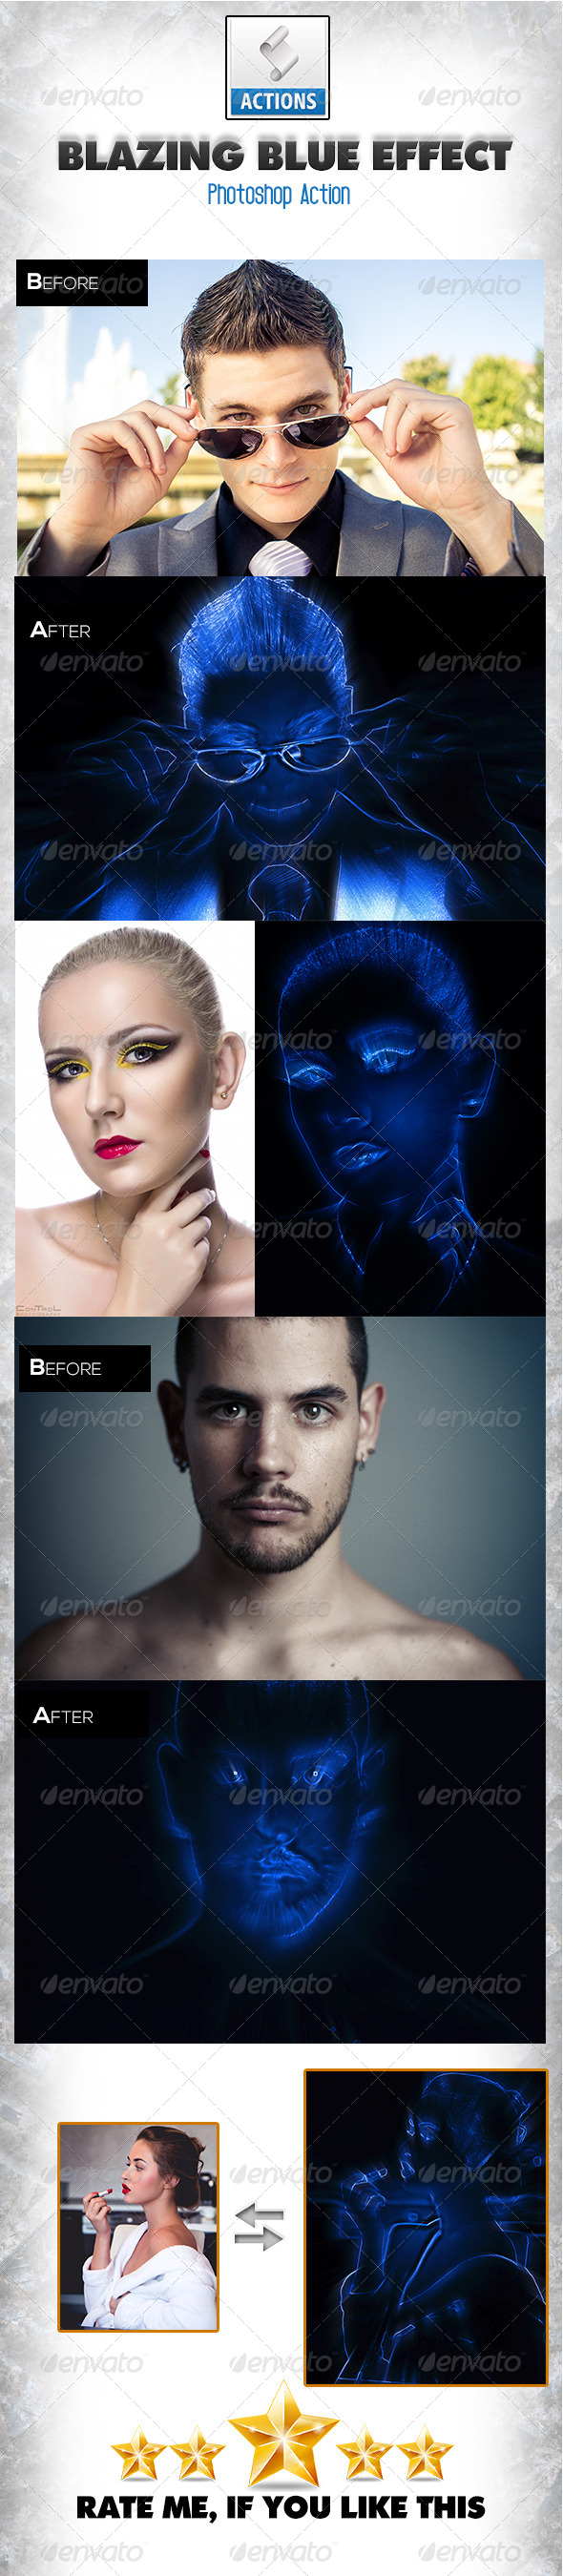 GraphicRiver Blazing Blue Effect 8637396